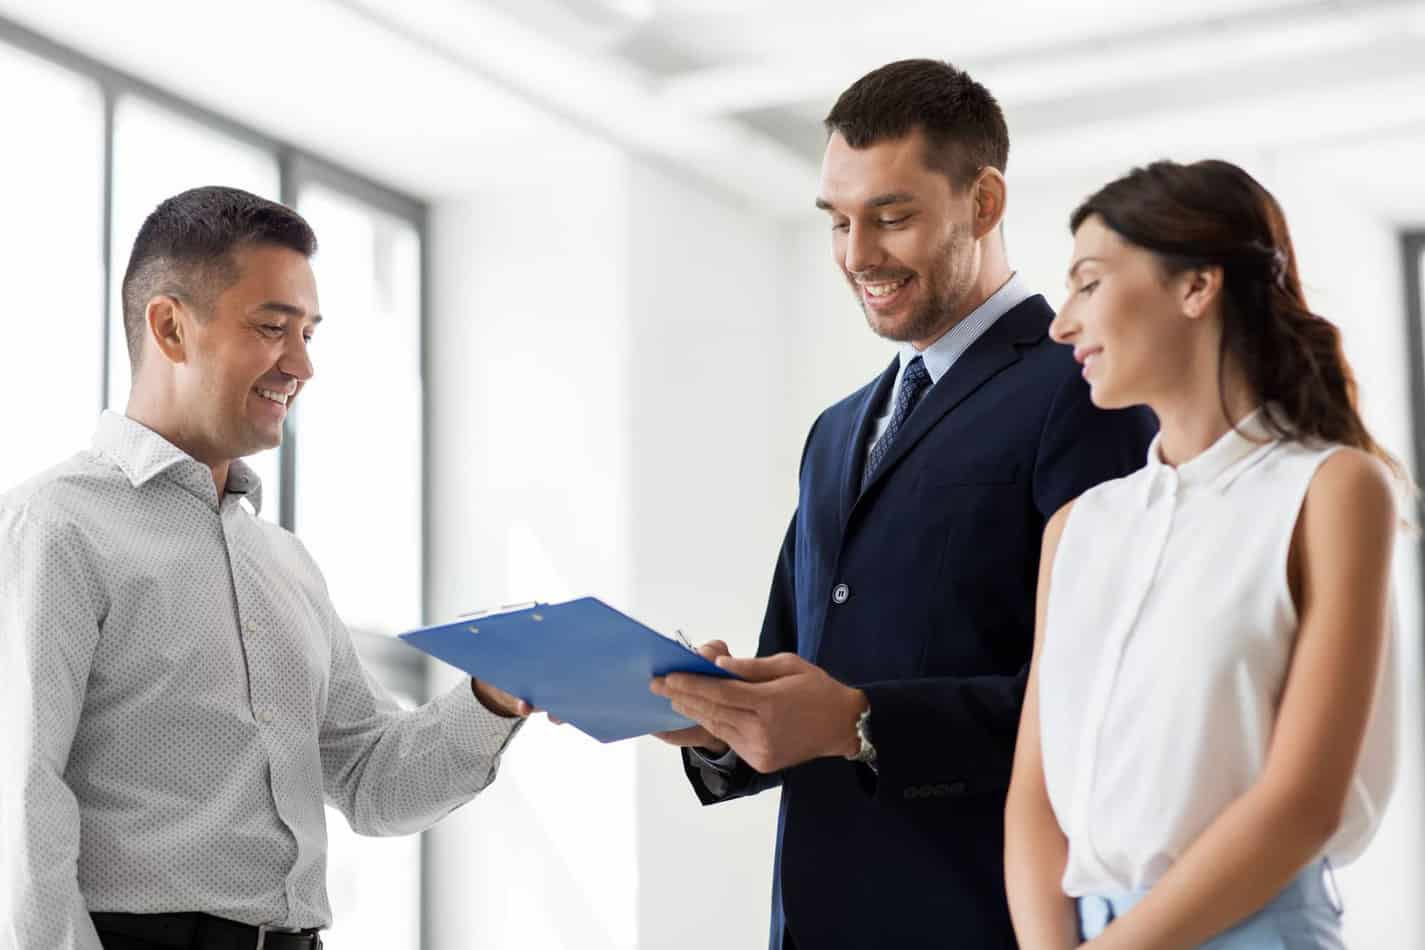 Real Estate Business Sale And People Concept Male Realtor With Clipboard And Pen Showing Contract Document To Customers At New Office Room Realtor